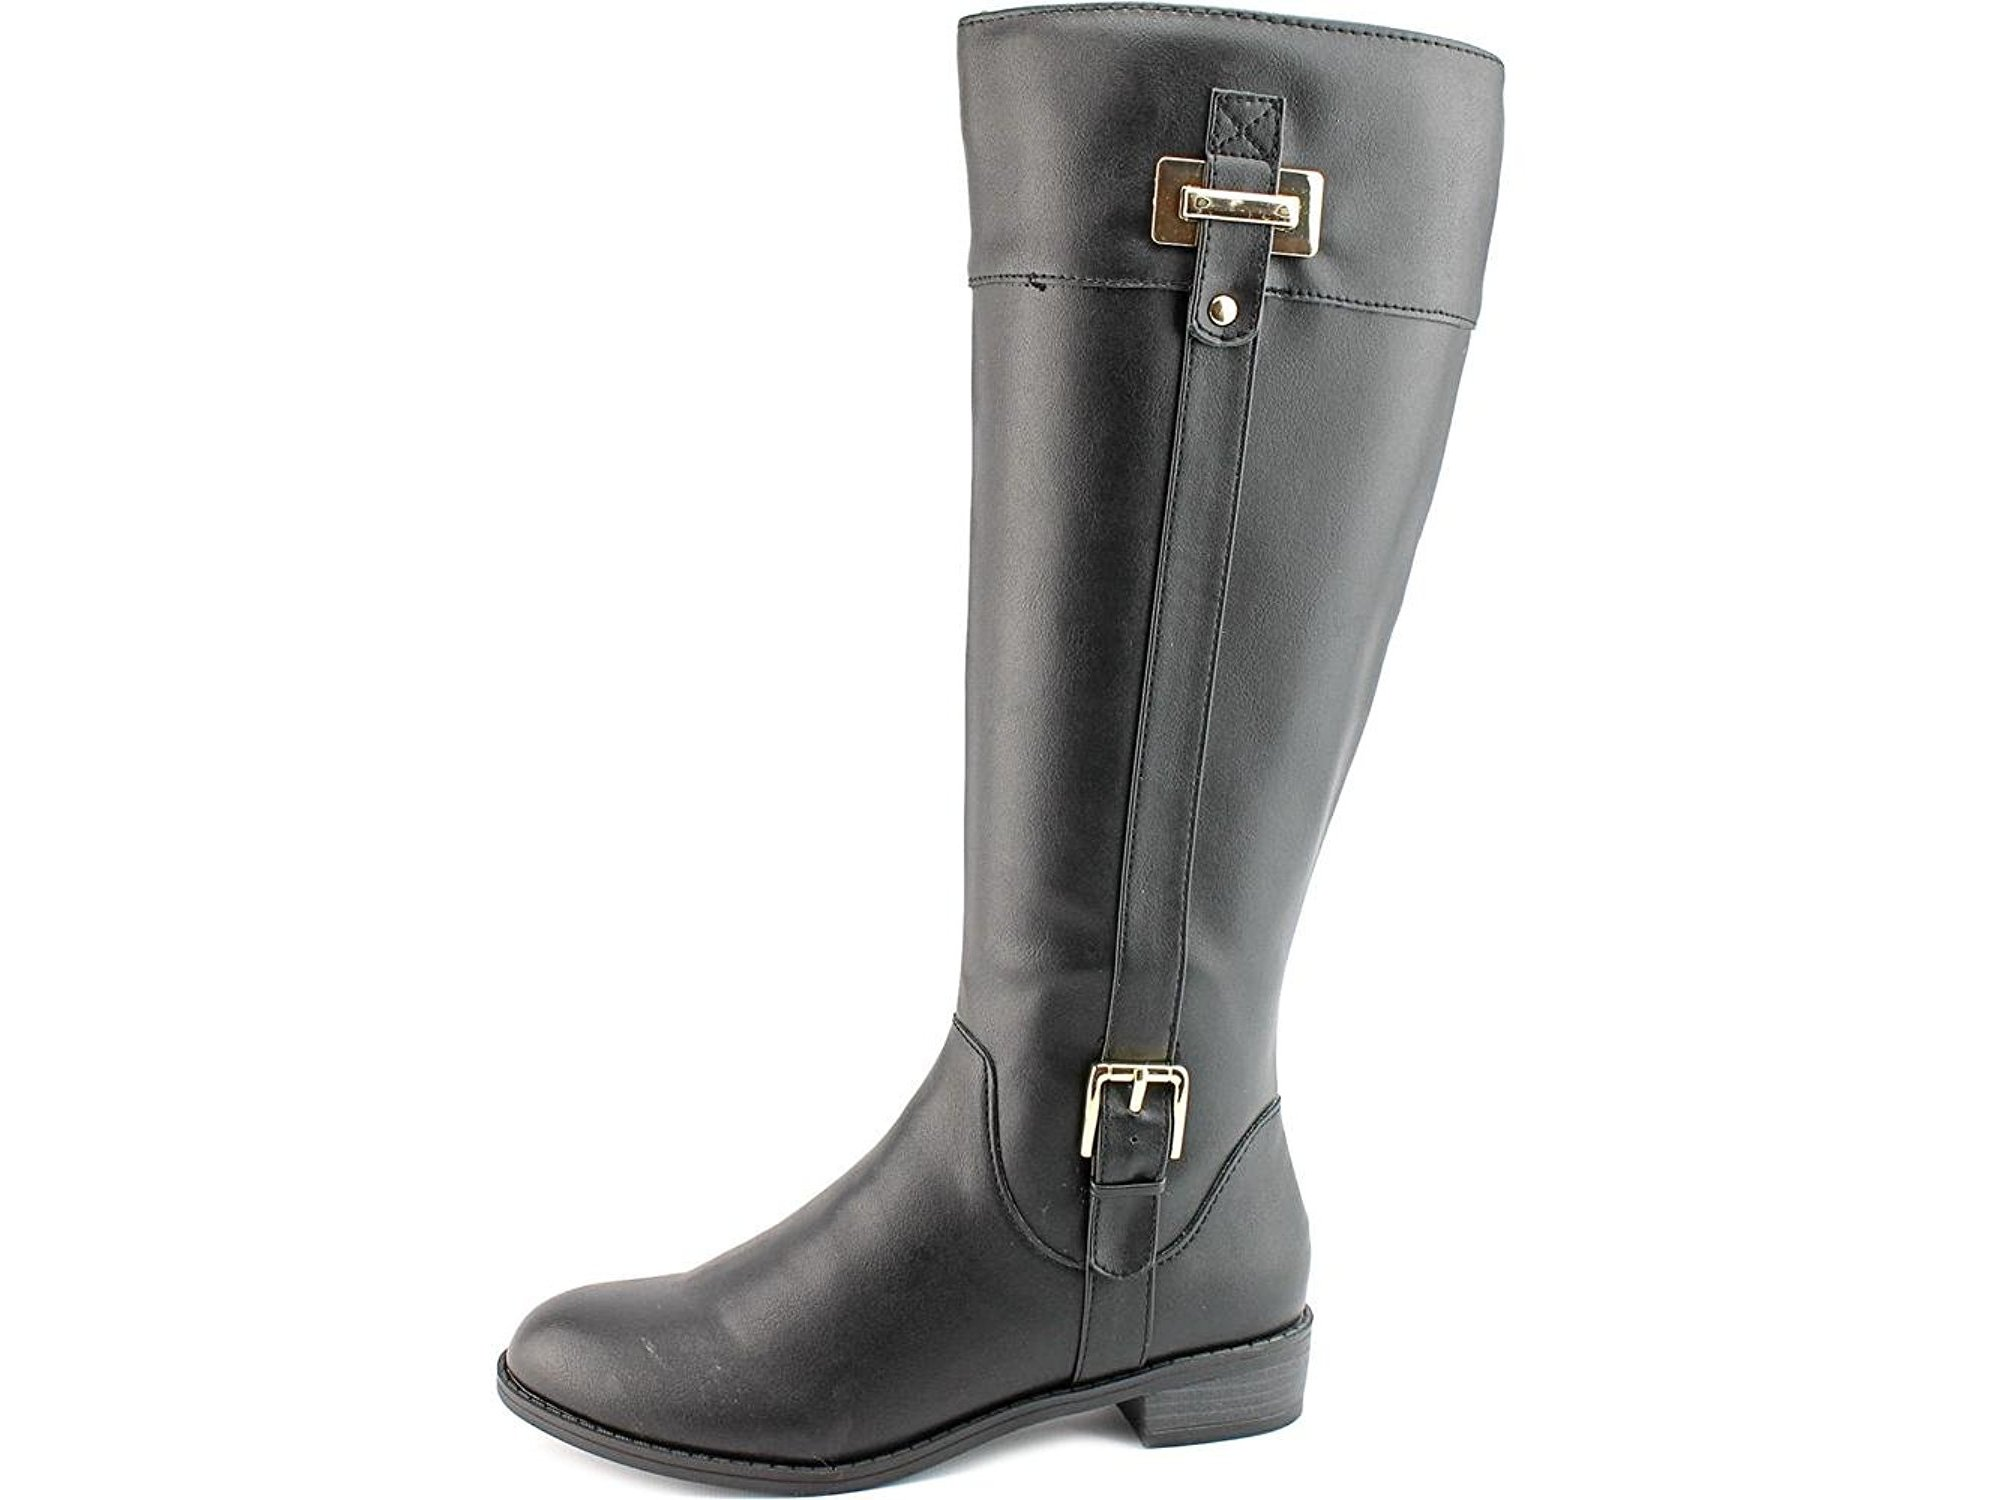 3be6f243ab8b Karen Scott Womens Deliee Round Toe Knee High Riding Boots